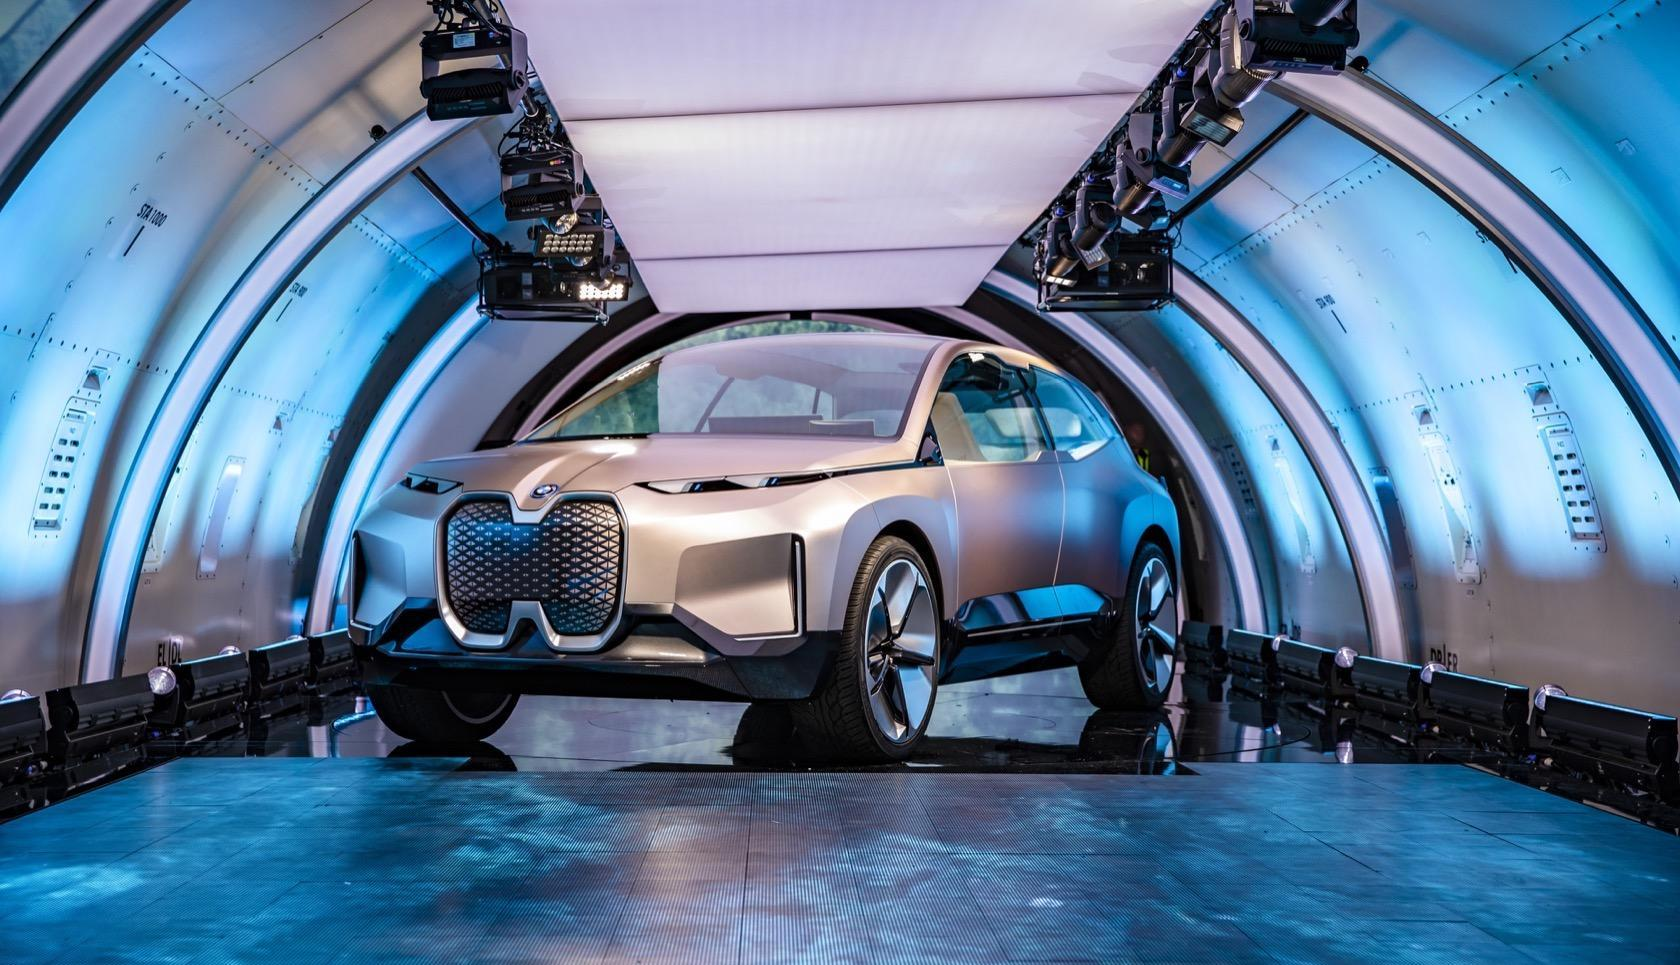 The Bmw Inext Electric Suv Has Two Big Plans For 5g Slashgear